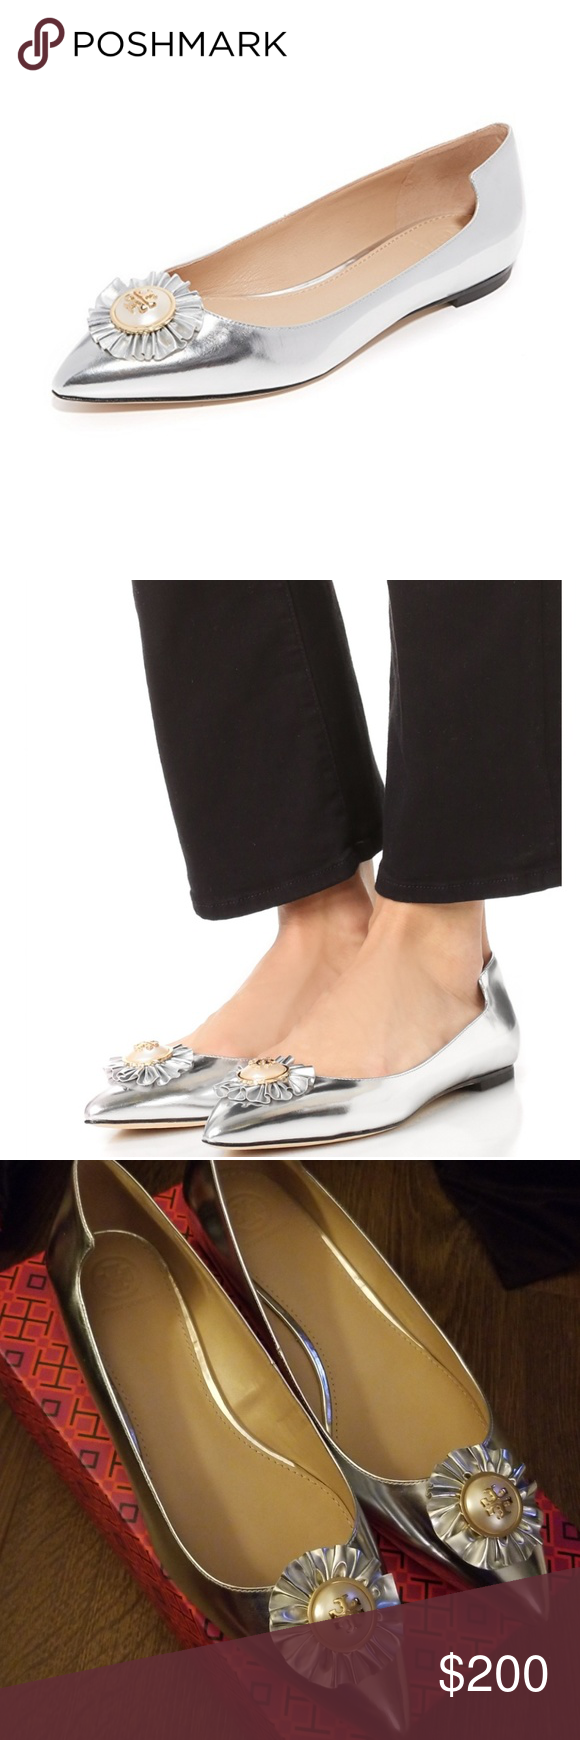 b67a26472e2 NWB Tory Burch Melody Pointy Toe Flats Size 10.5 New with box and never  been used